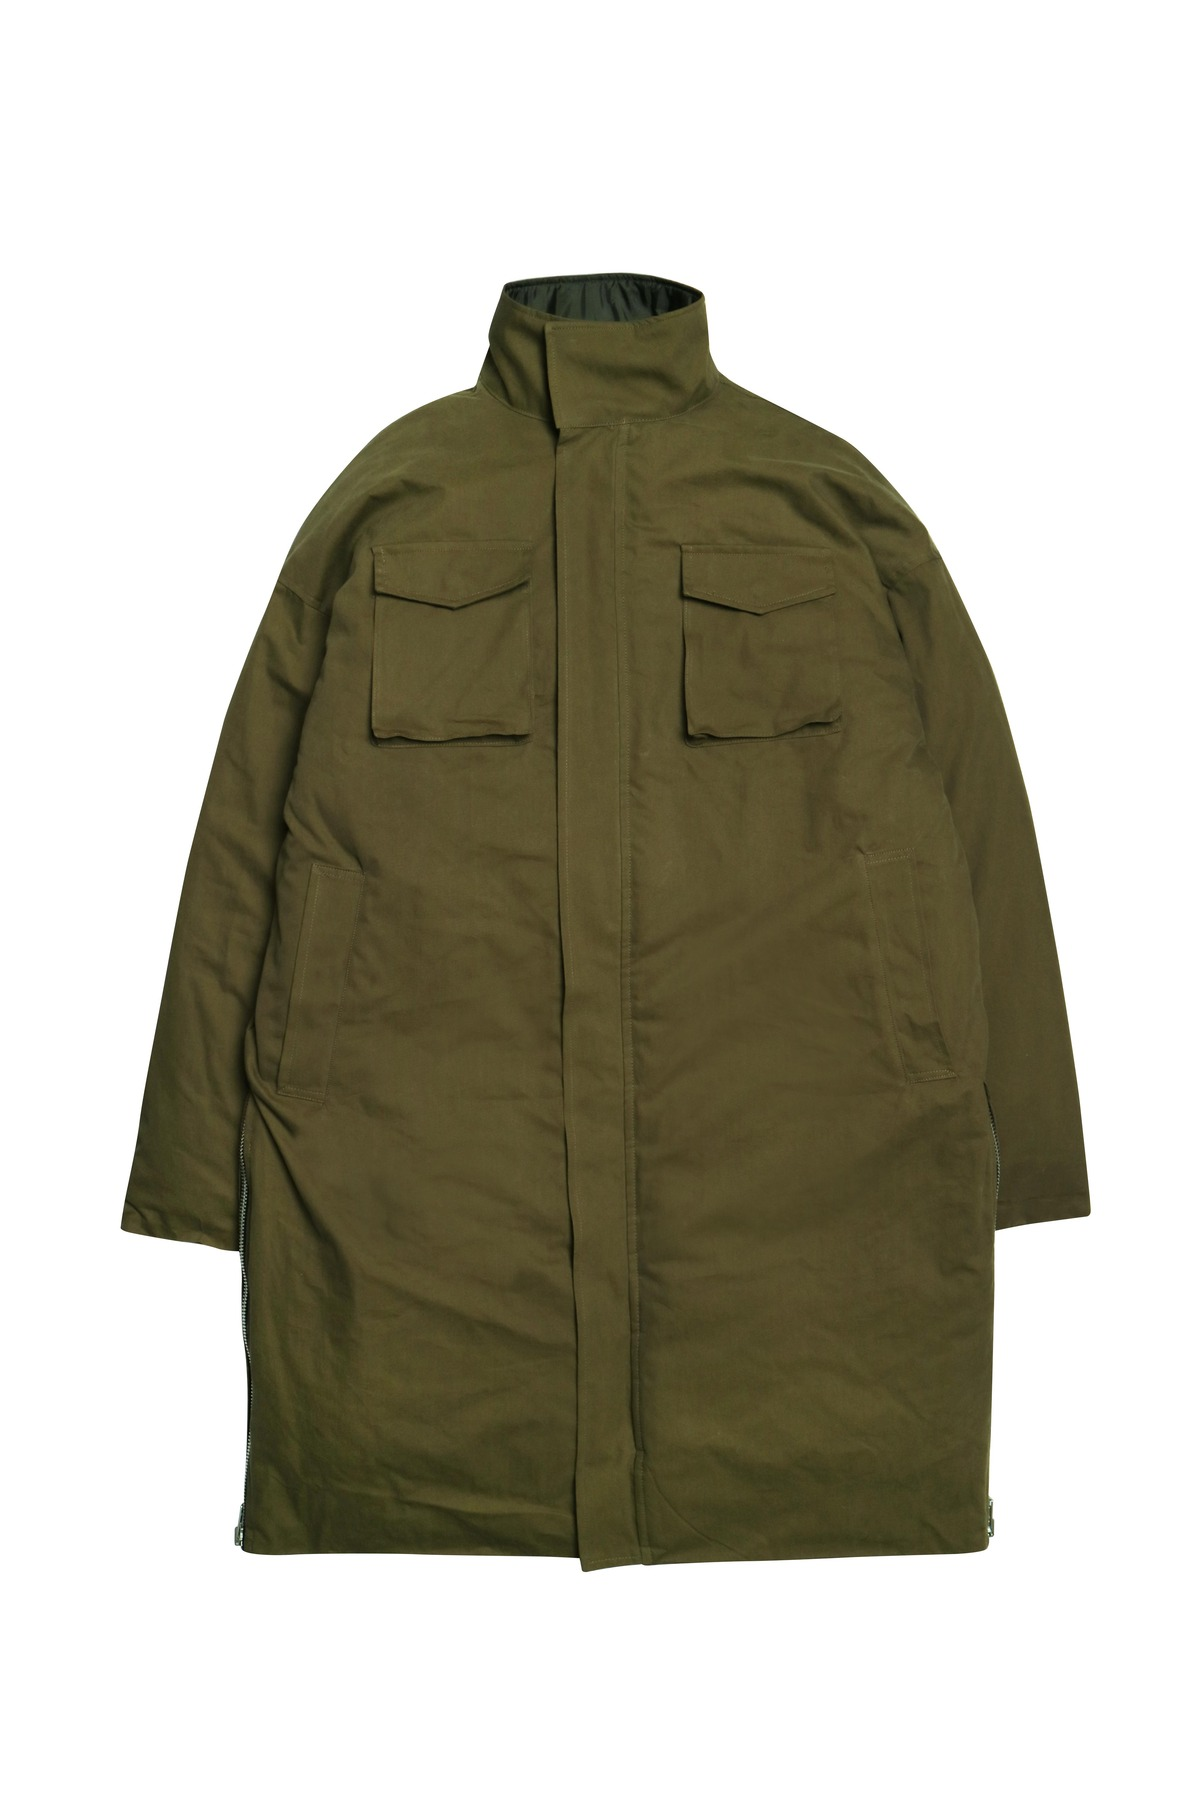 KHAKI SIDE ZIP LONG PADDING